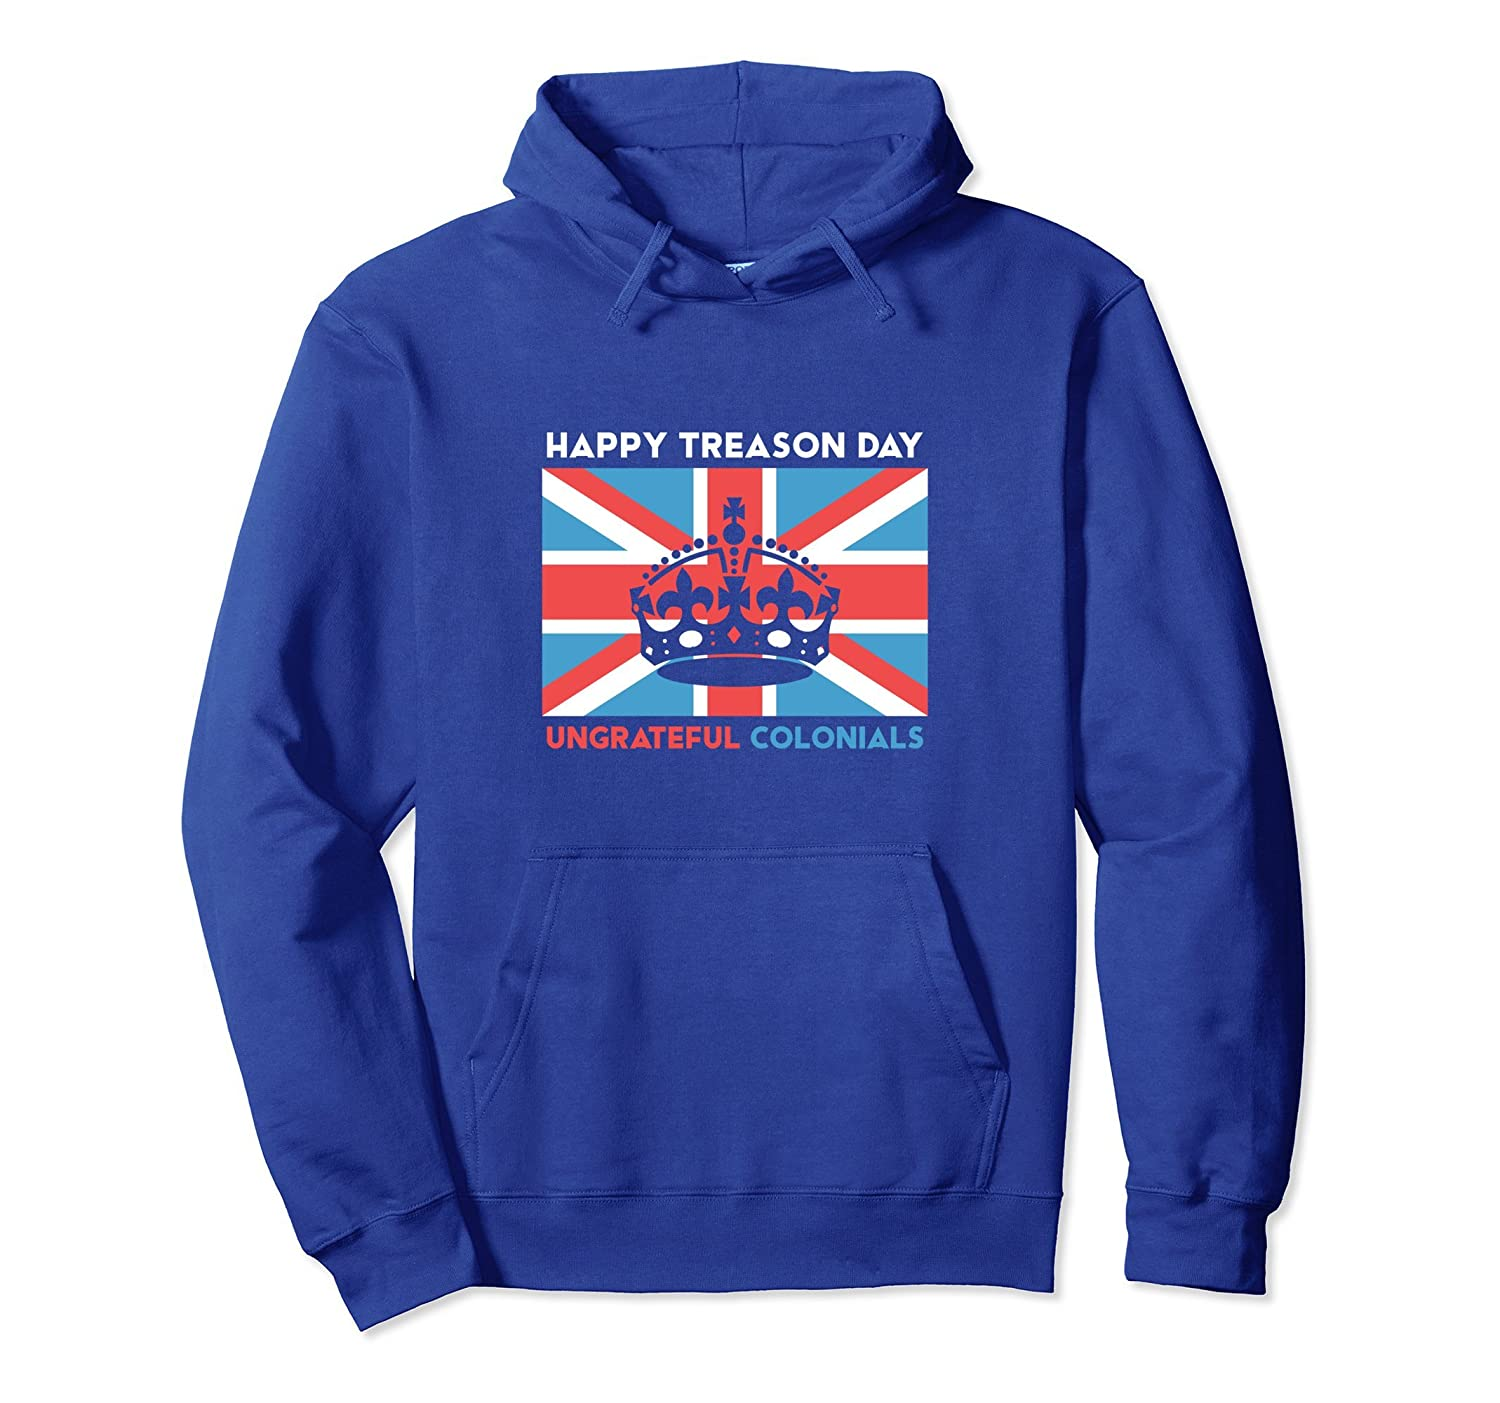 4th of July Hoodie Happy Treason Day Gift for Men Women-AZP